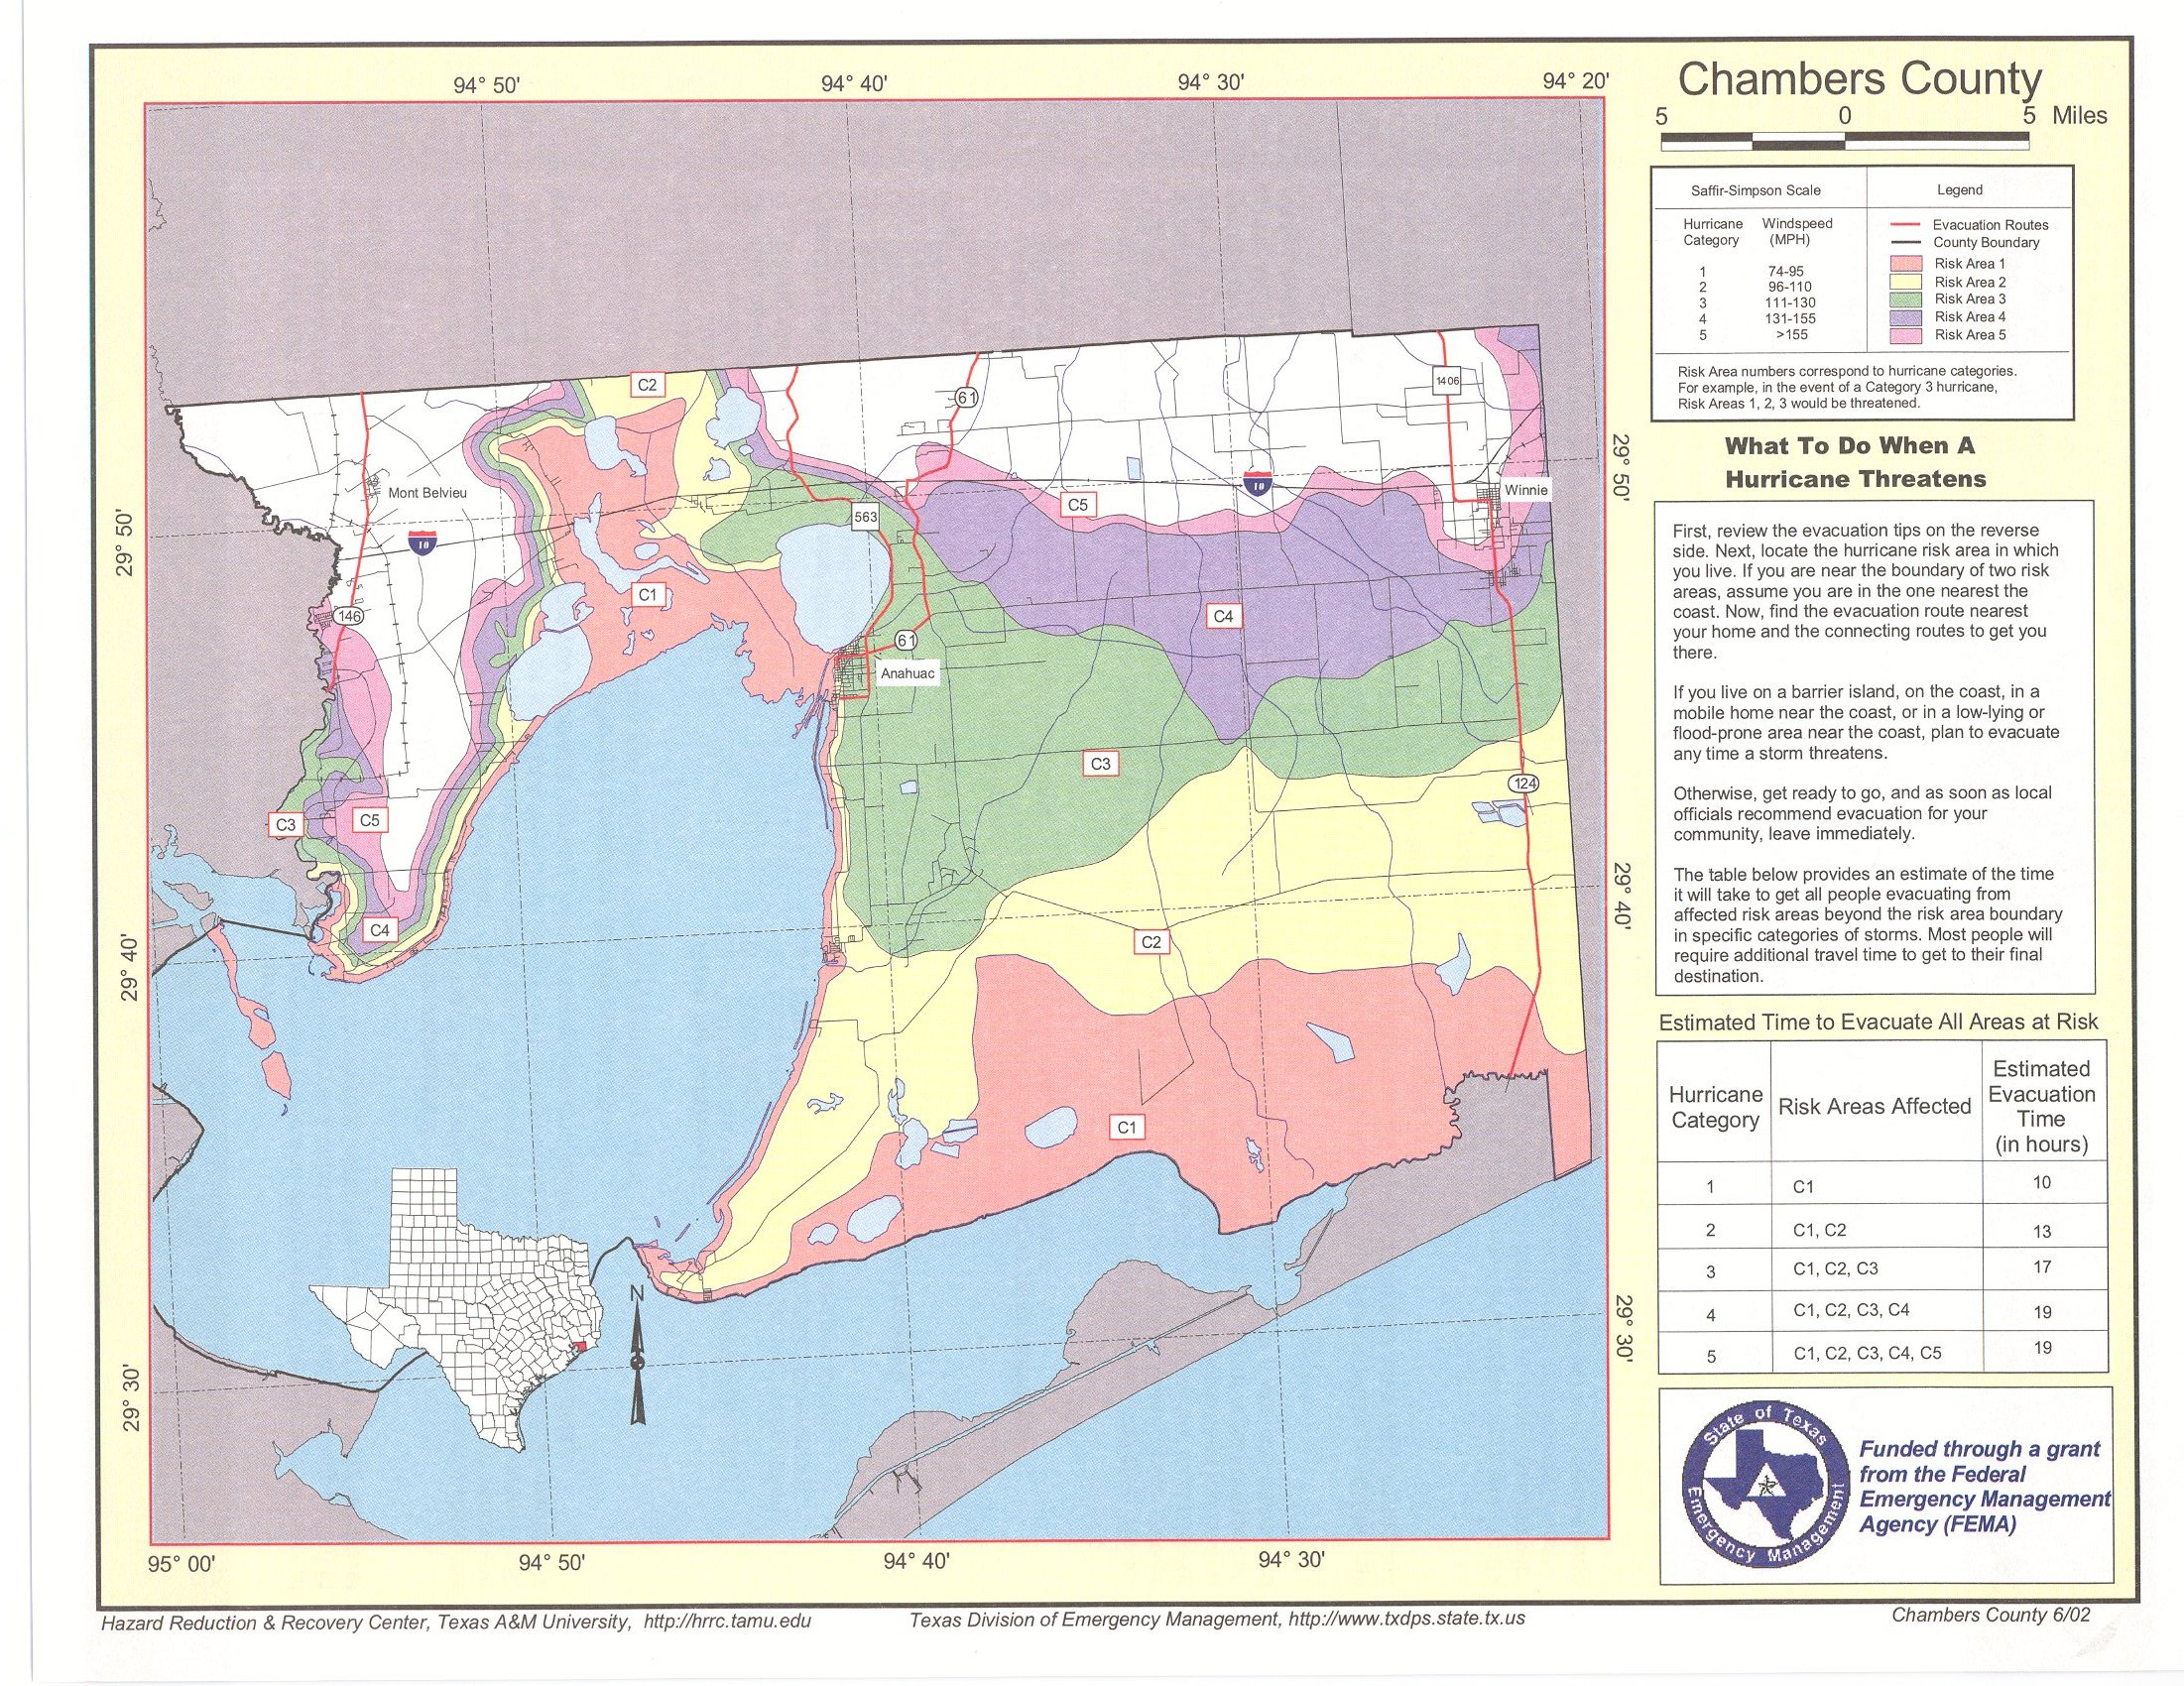 Chambers County Risk Area Map - Chambers County Texas Flood Zone Map